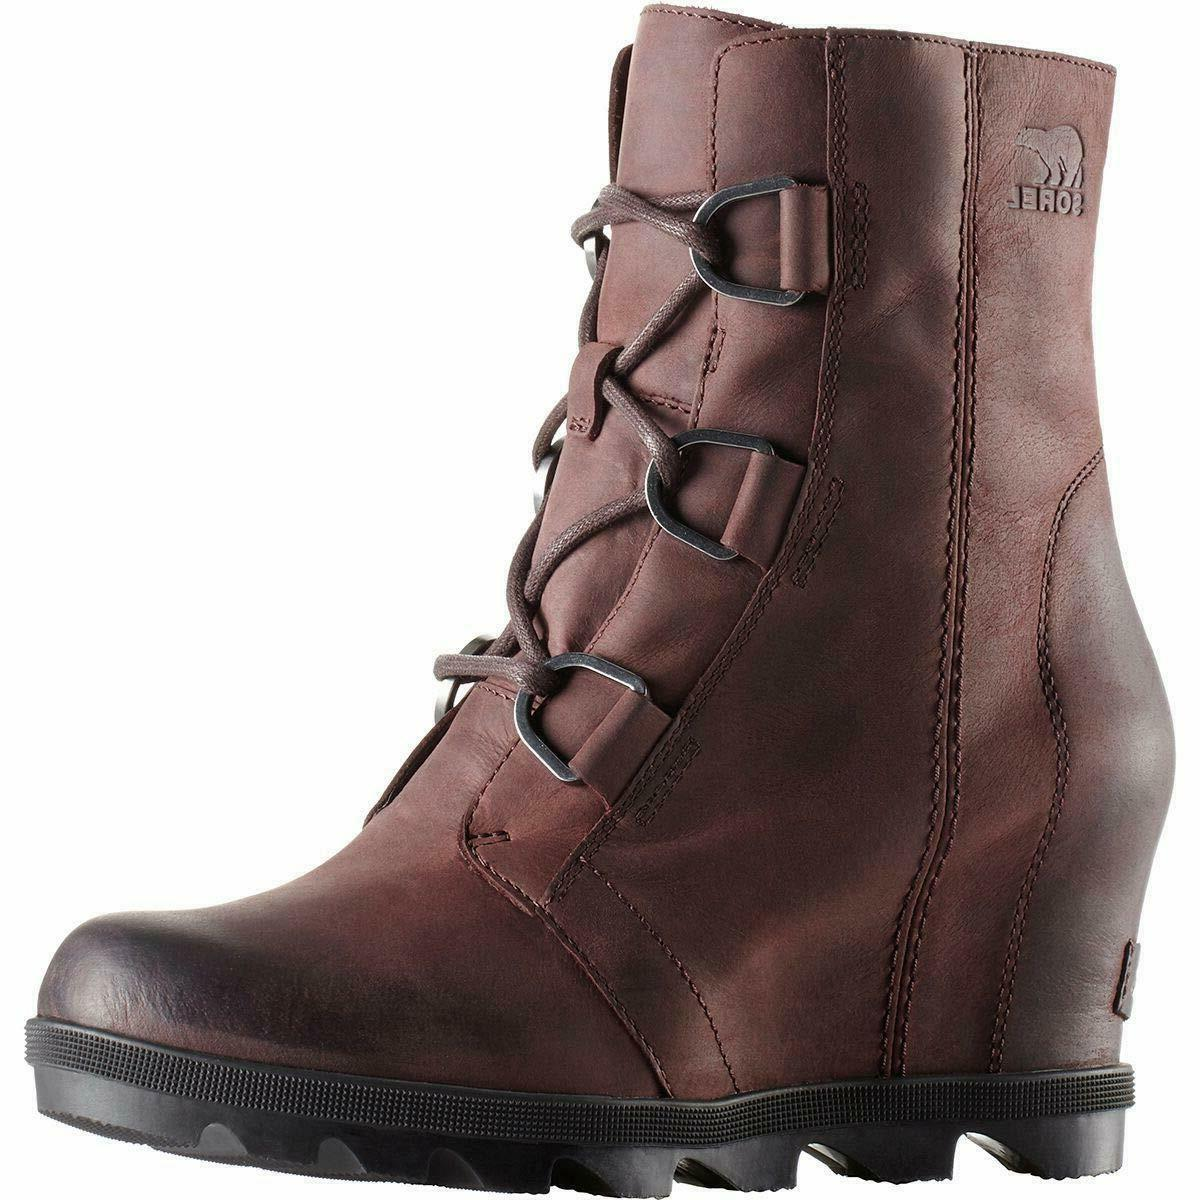 SOREL Women's of Arctic II Boots